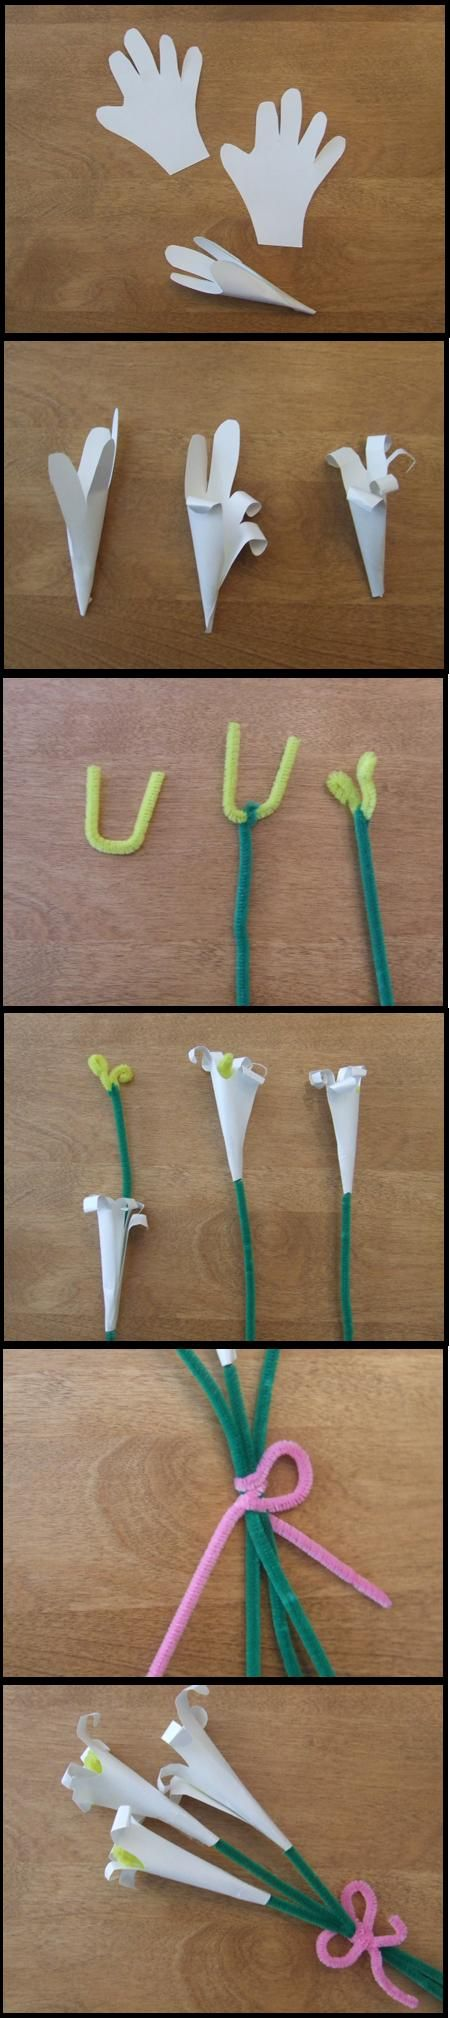 paper hand cut out Easter lily craft